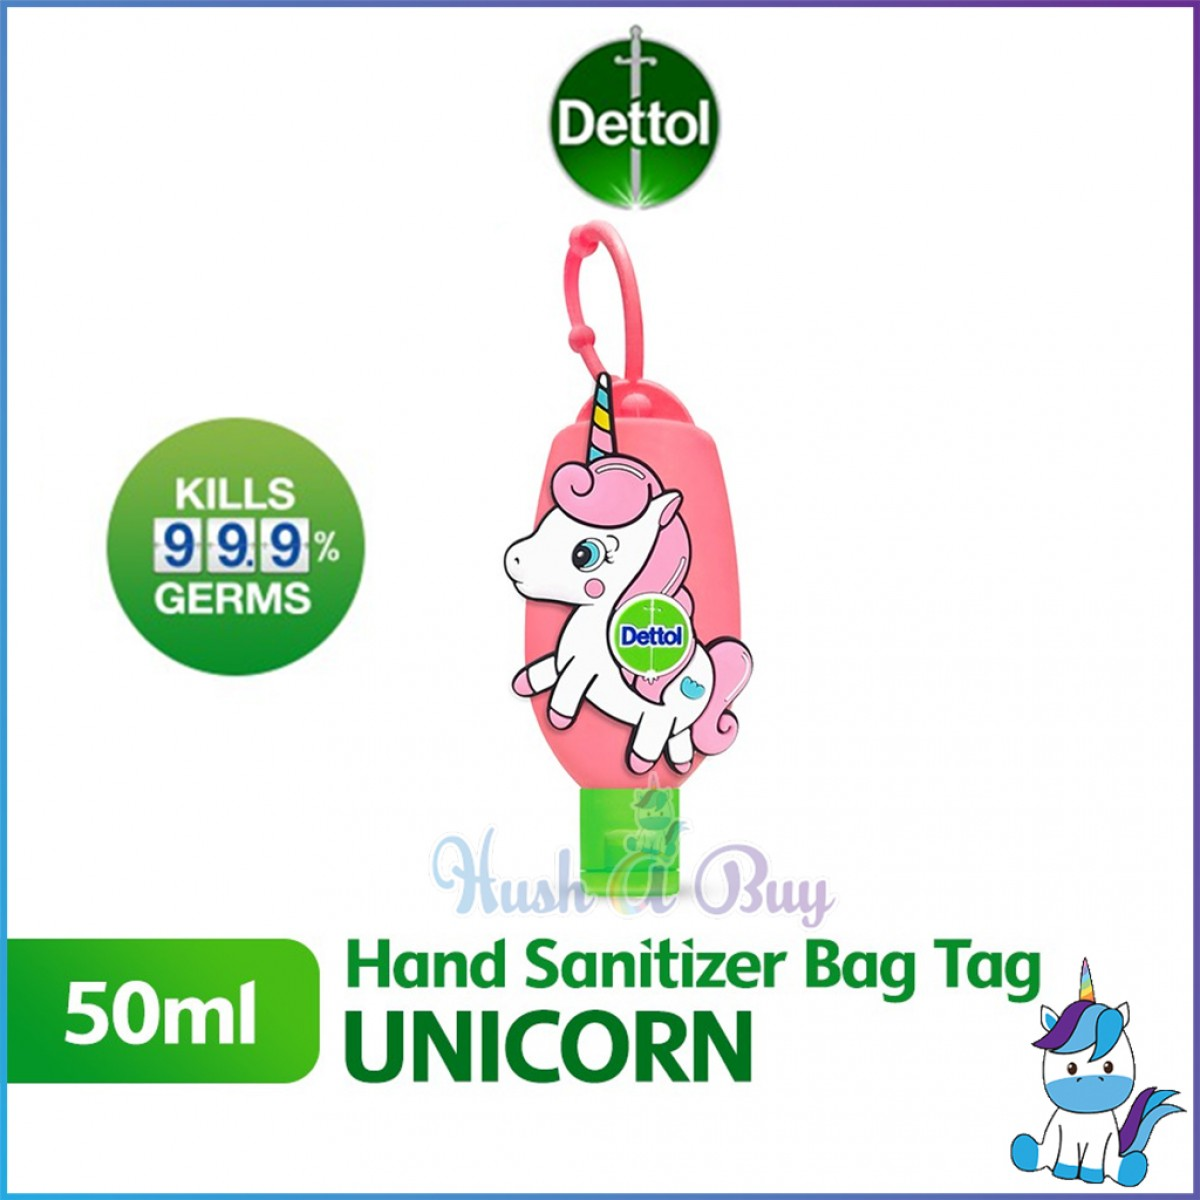 Dettol Hand Sanitizer Bag Tag 50ml - UNICORN / DINO (Limited Edition)